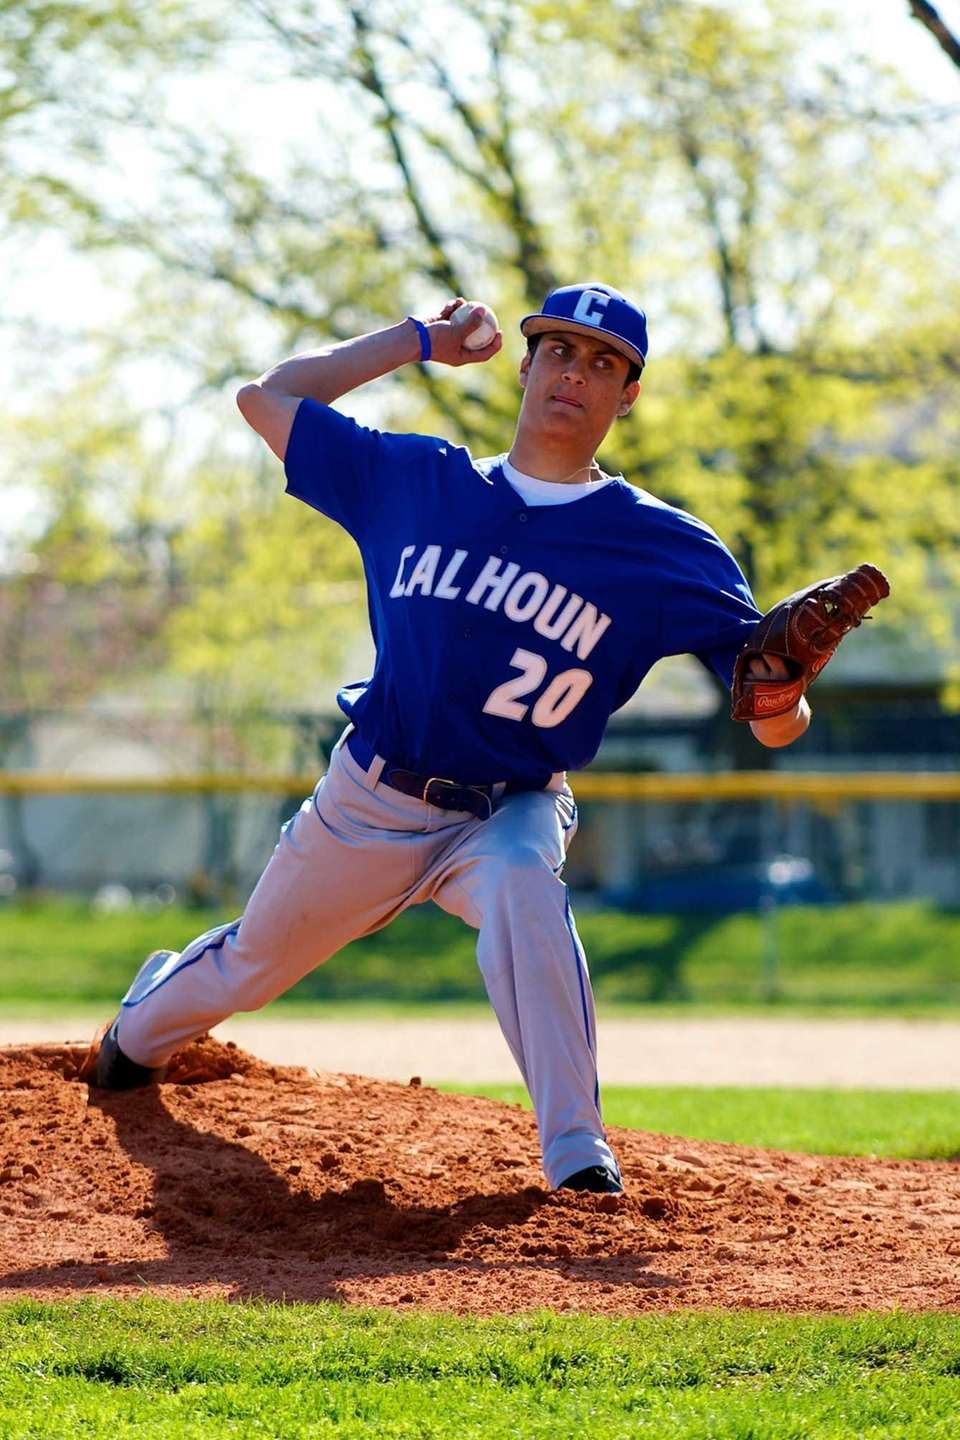 Calhoun pitcher Zach Mastrangelo (20) delivers a pitch